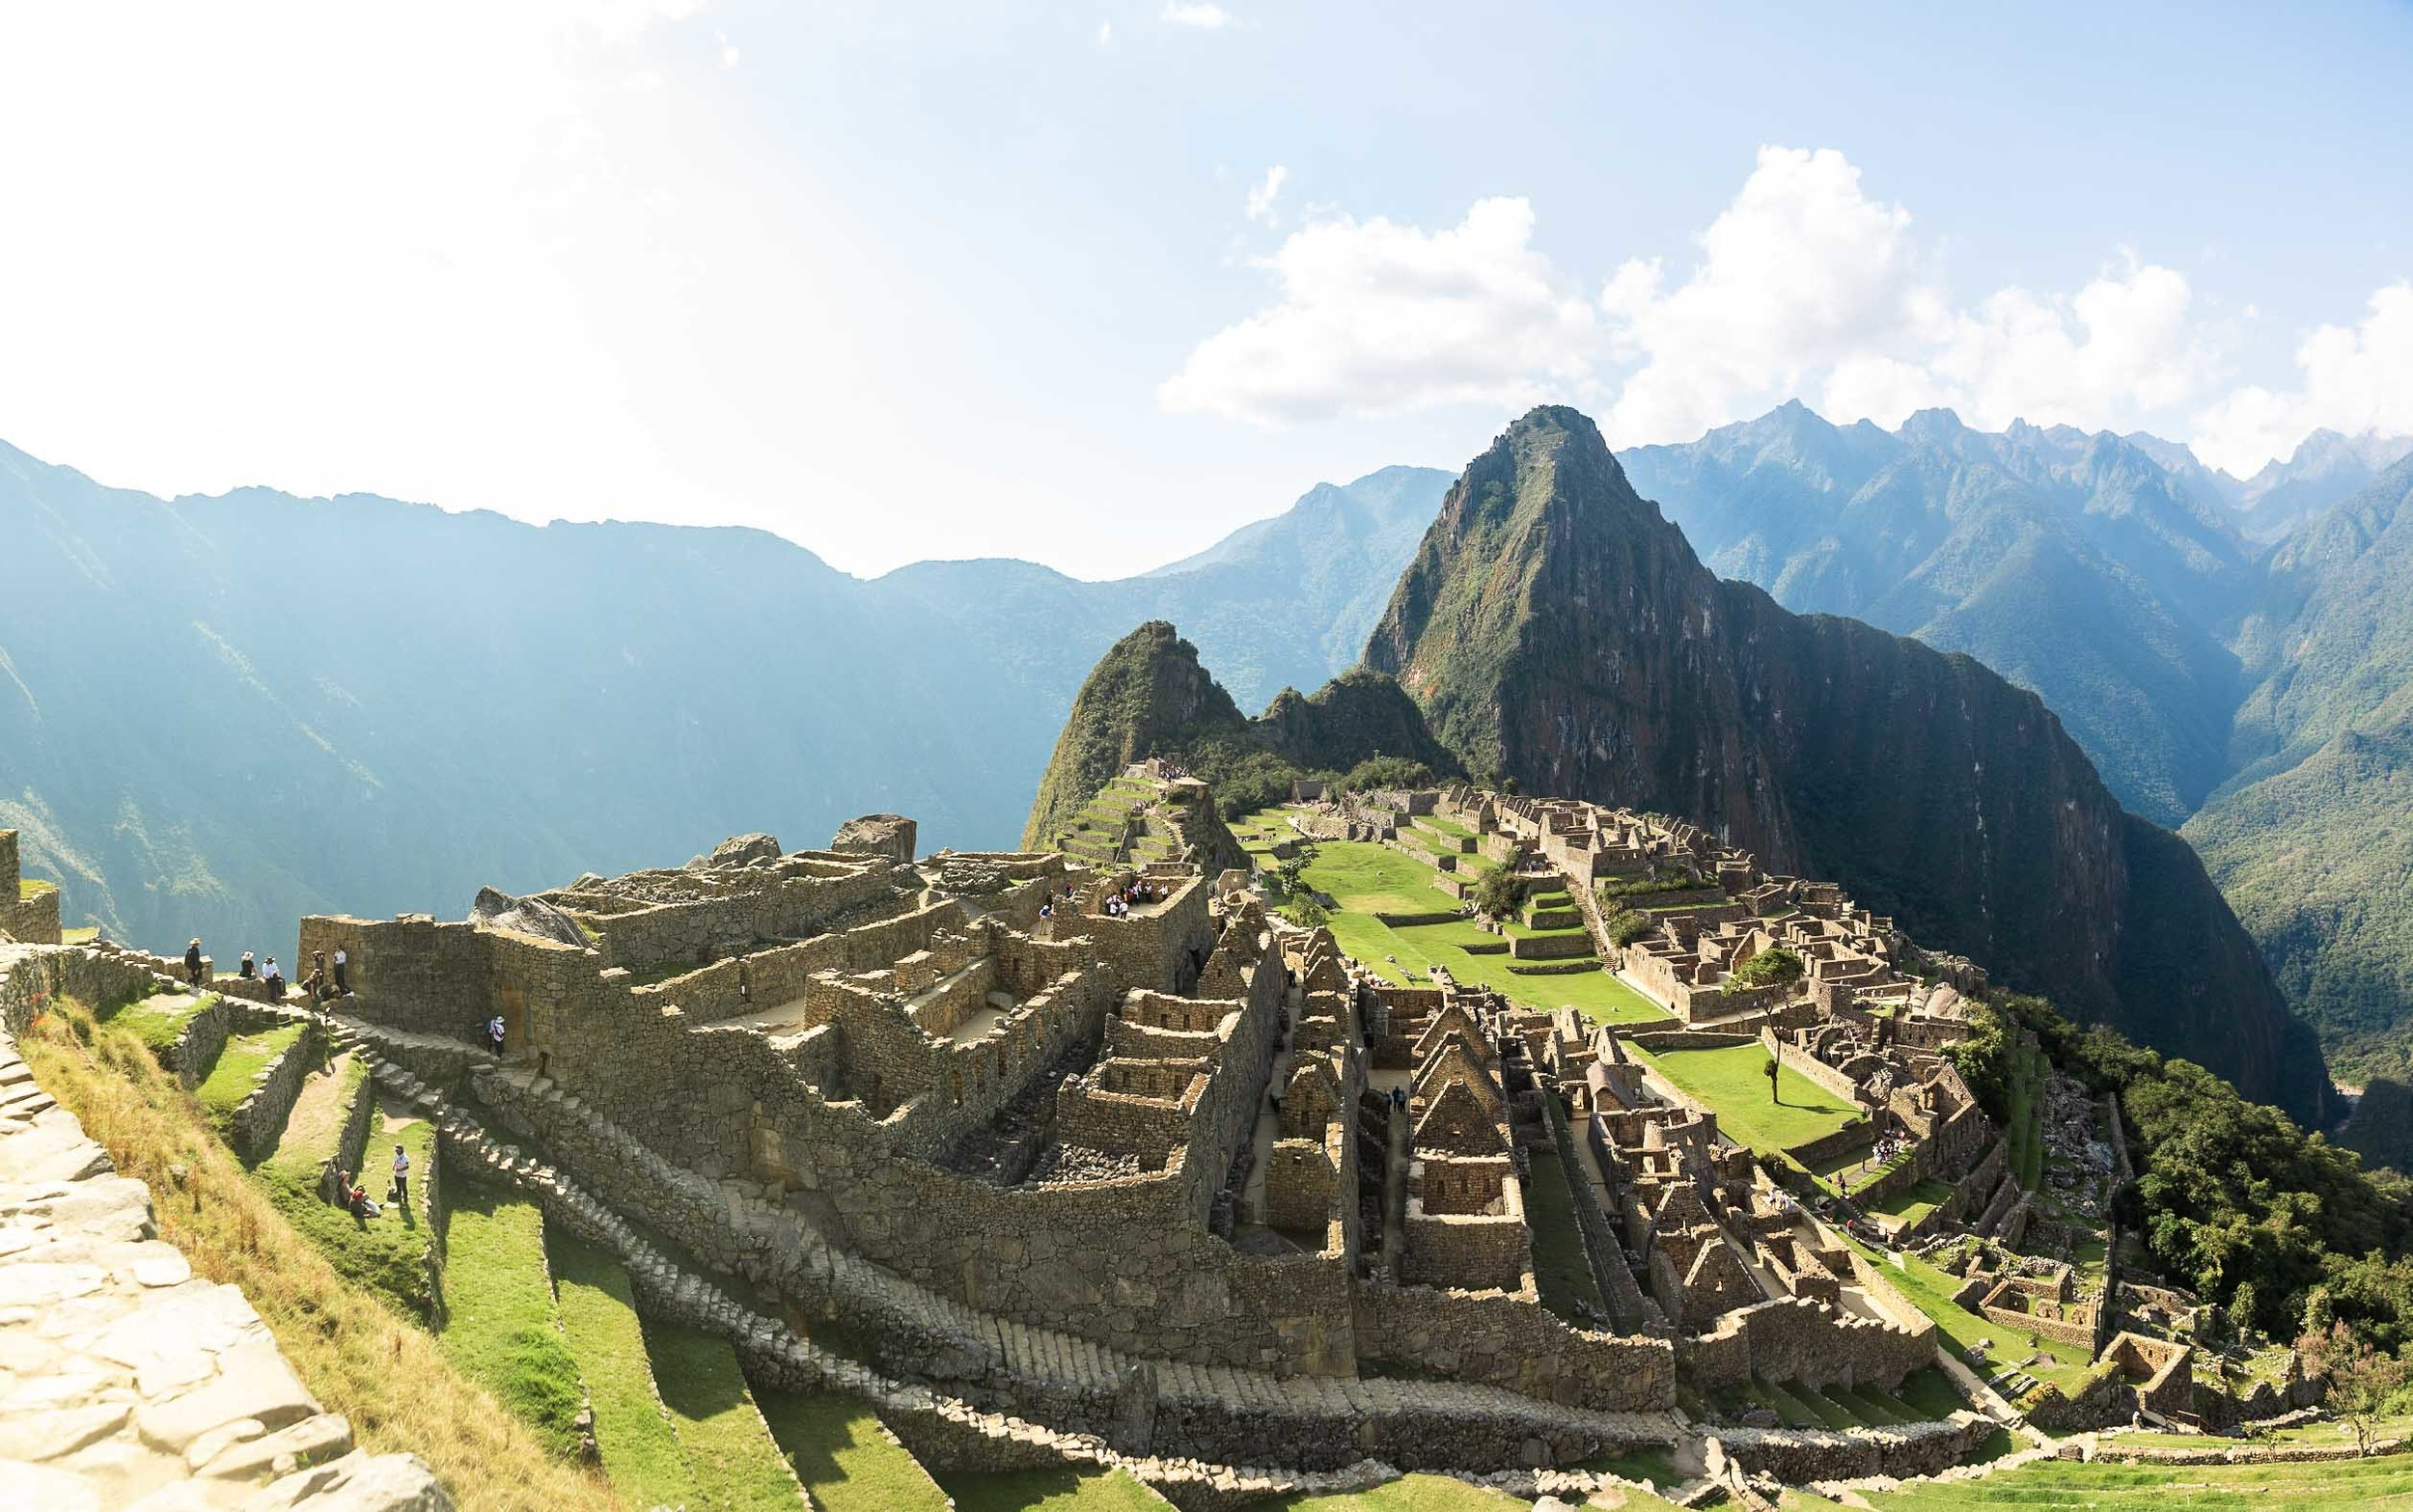 THE BIG PAPA JO - PART 3: MACHU PICCHU